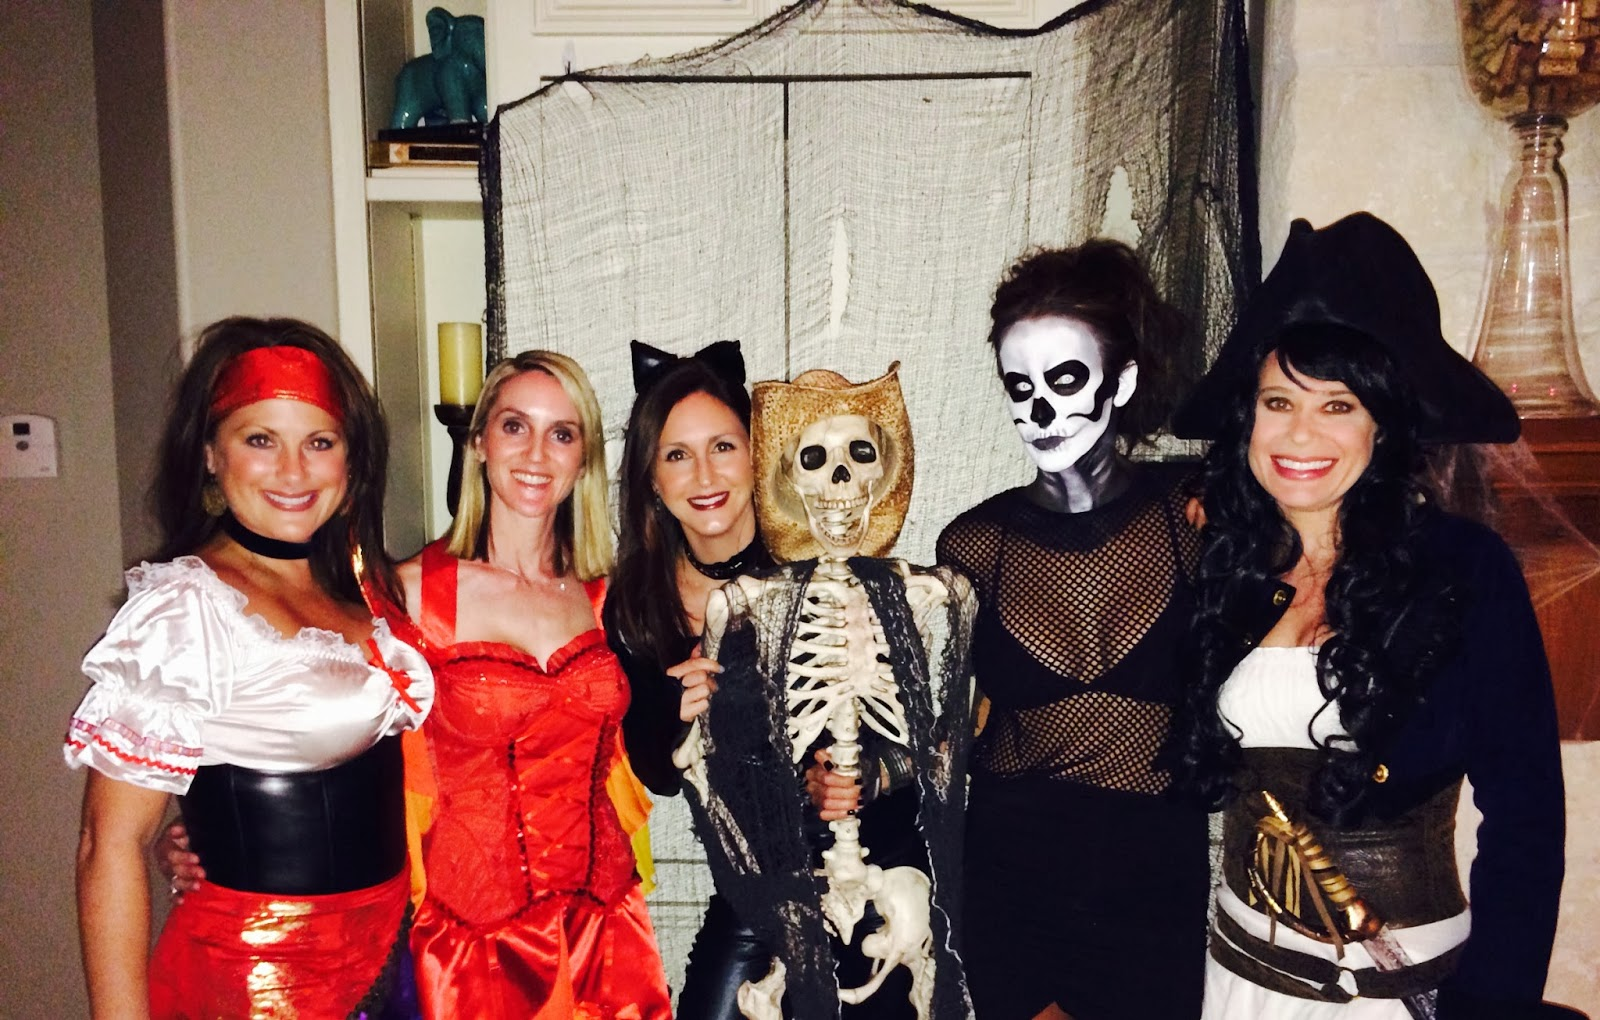 bohoBlack: Halloween house party for ADULTS!